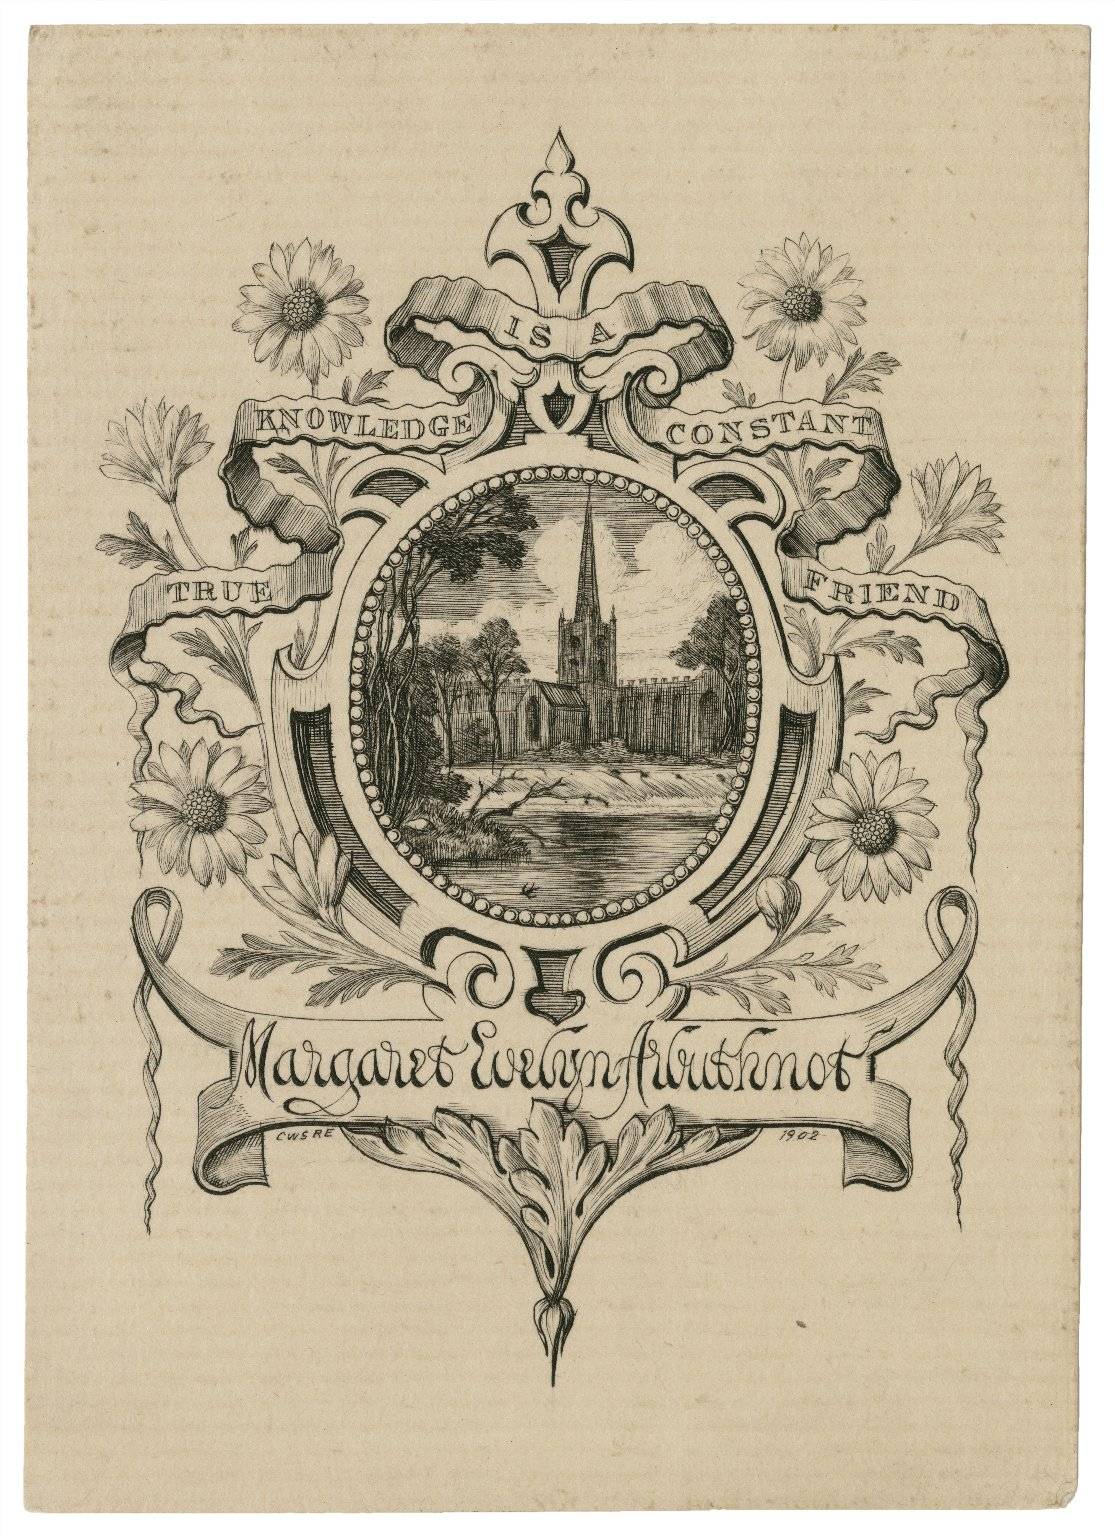 True knowledge is a constant friend, [bookplate for] Margaret Evelyn Arbuthnot [graphic] / C.W.S. R.E., 1902.